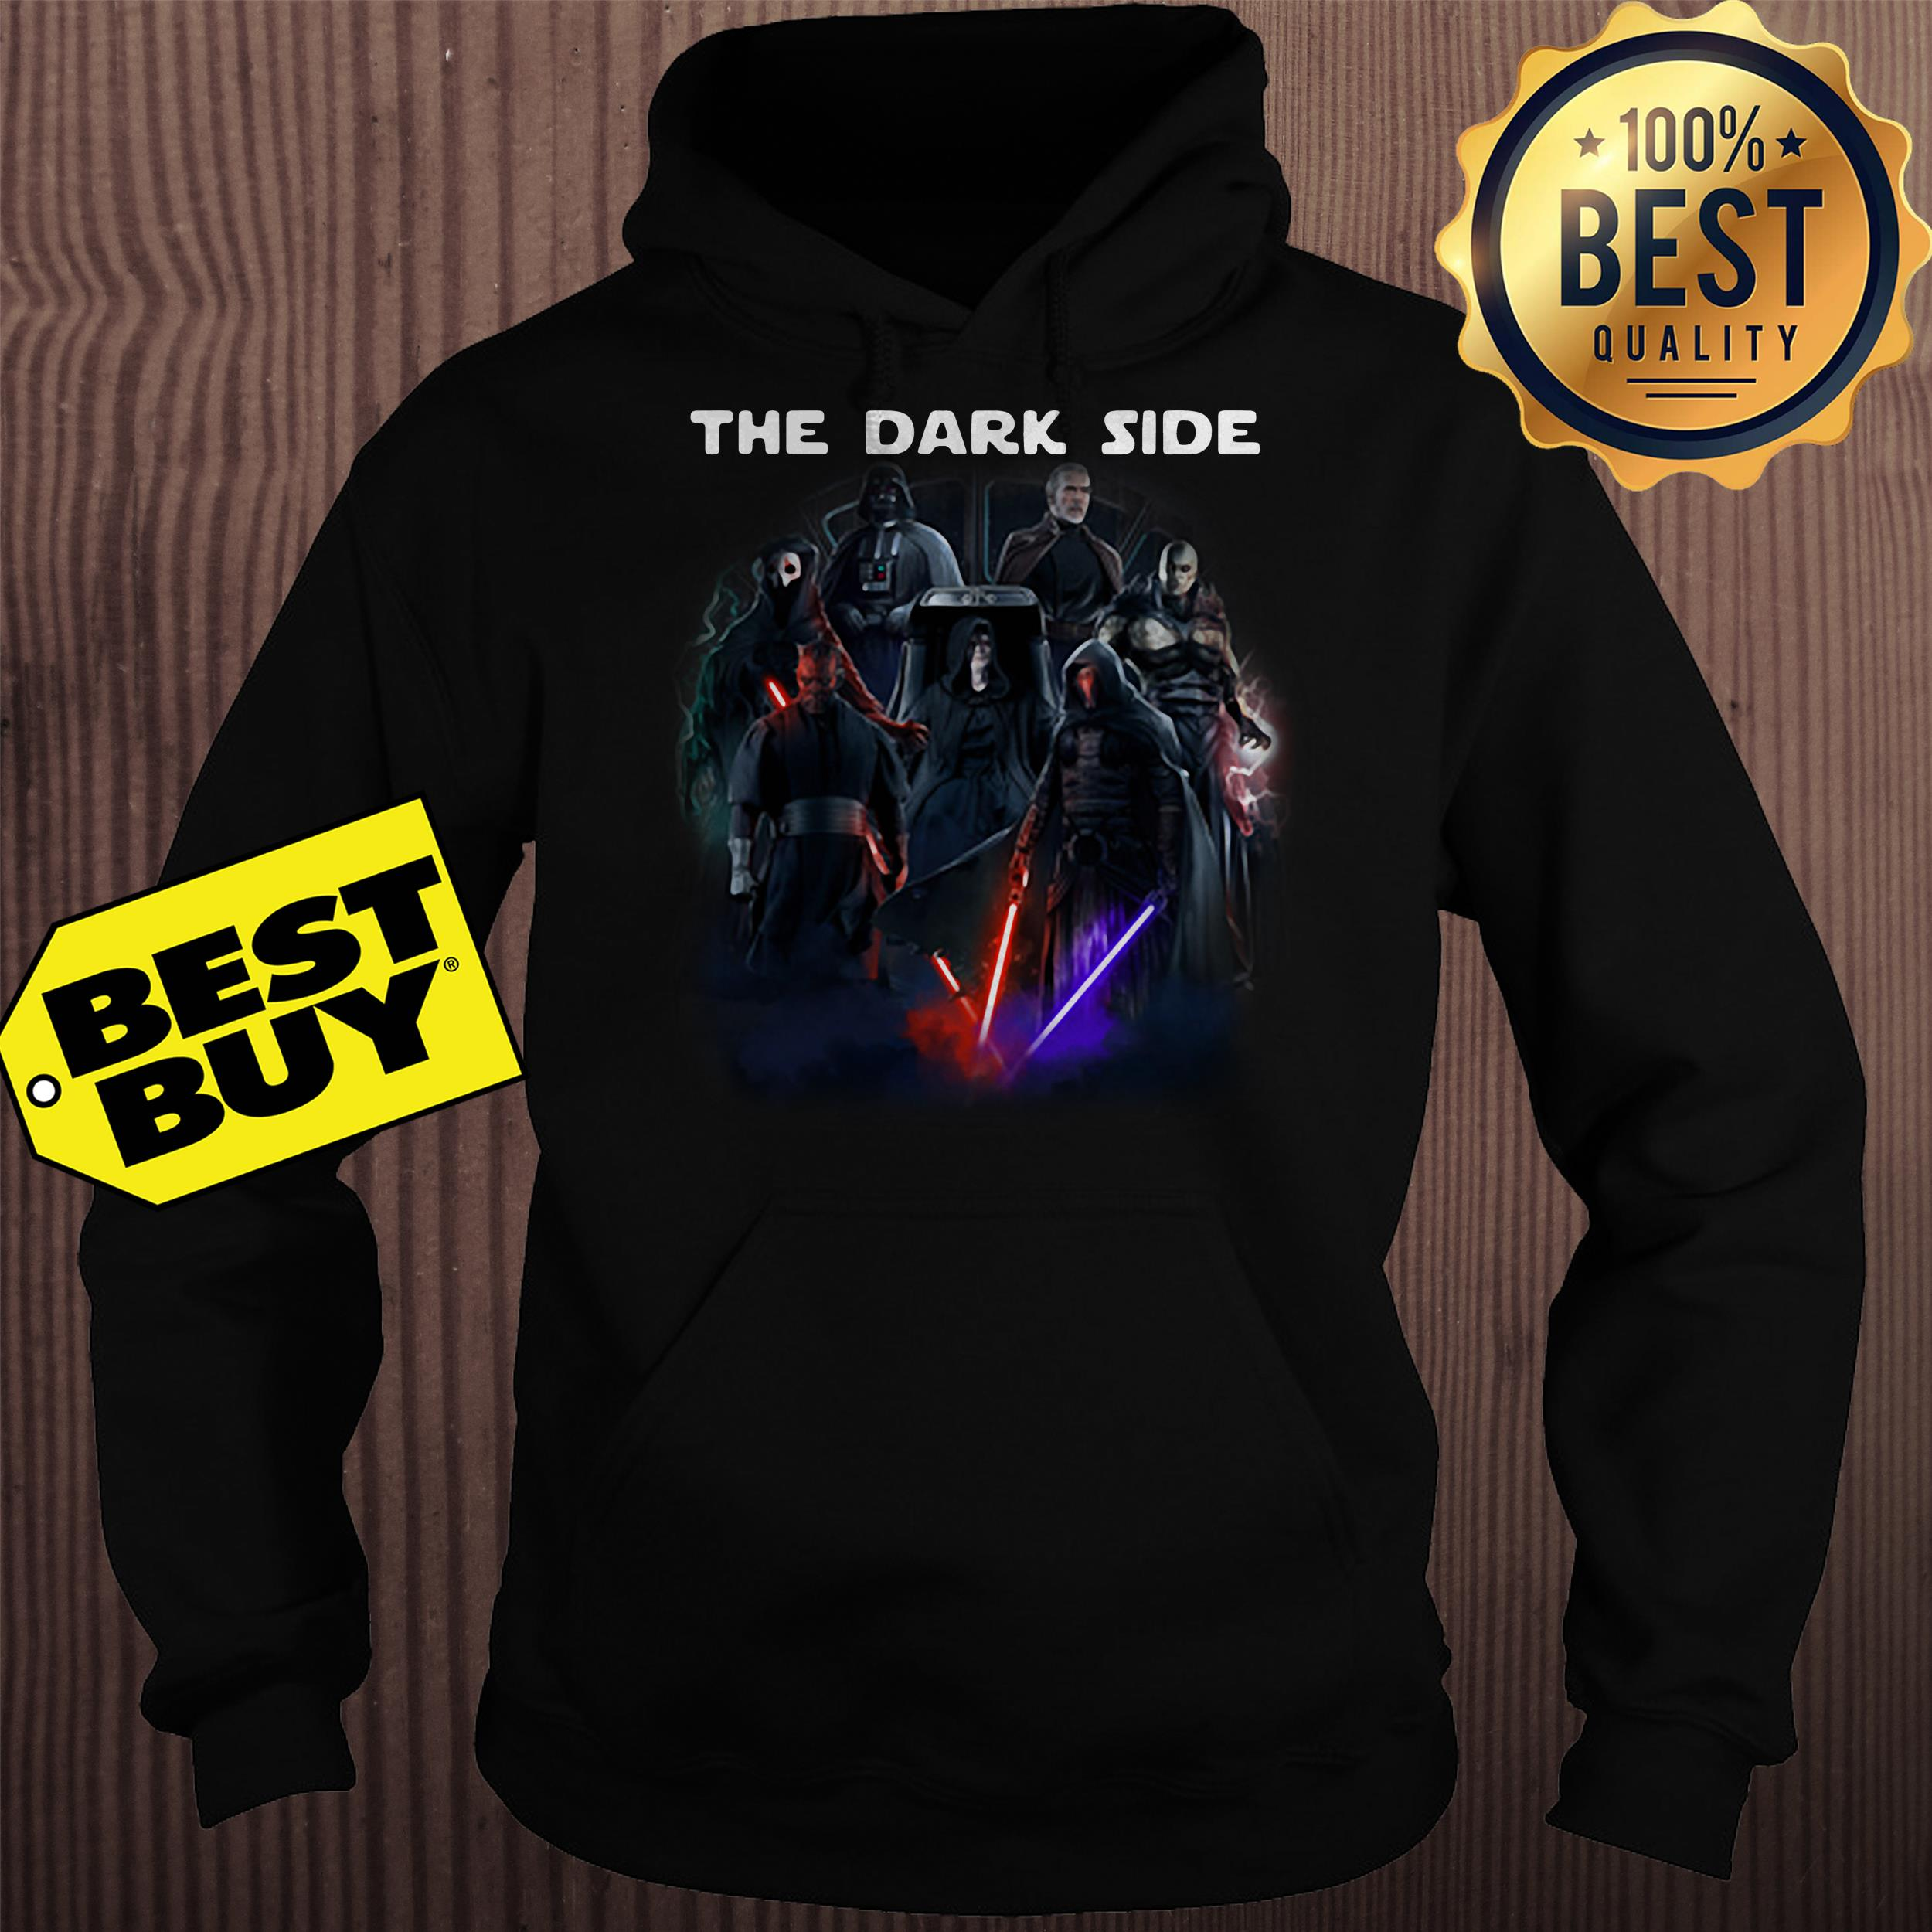 Official The Dark side hoodie